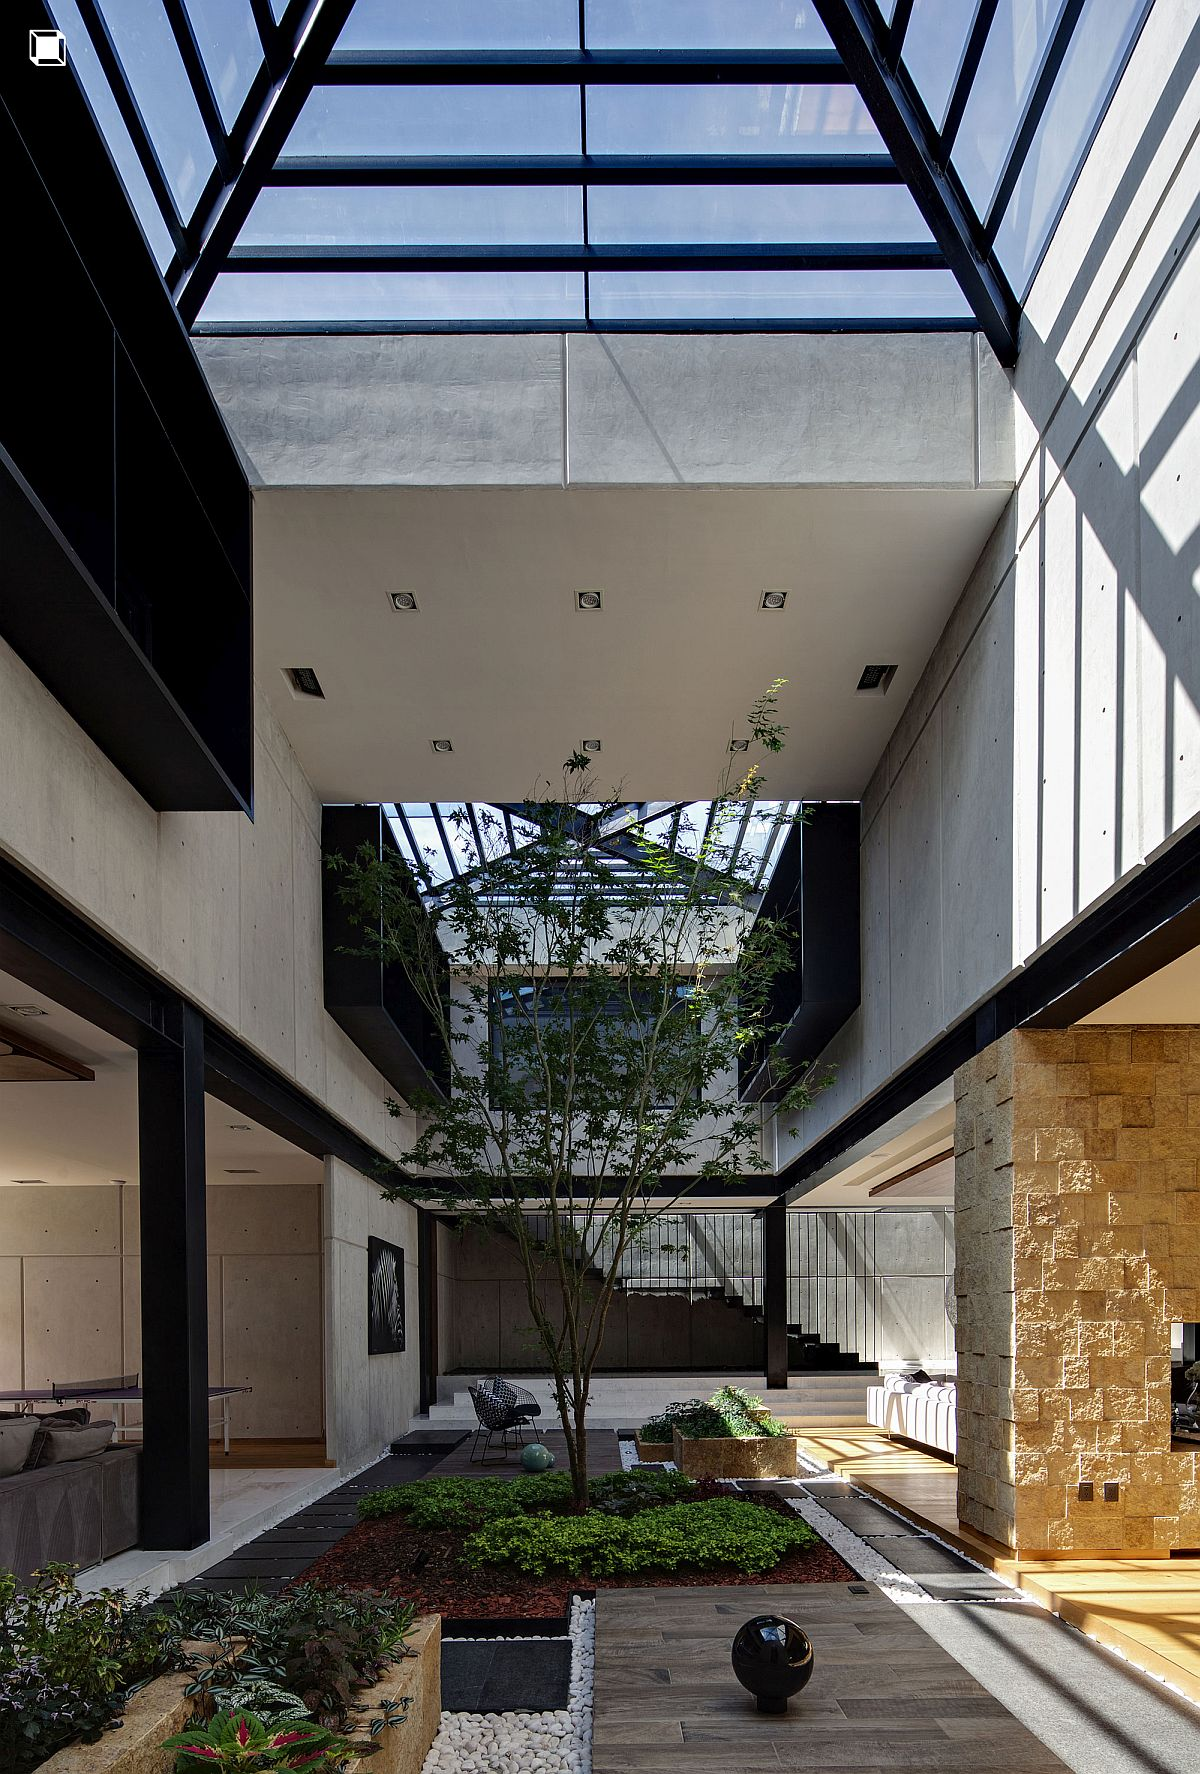 Glass domes and ceilings keep out cold winds and create green spaces inside the RO House